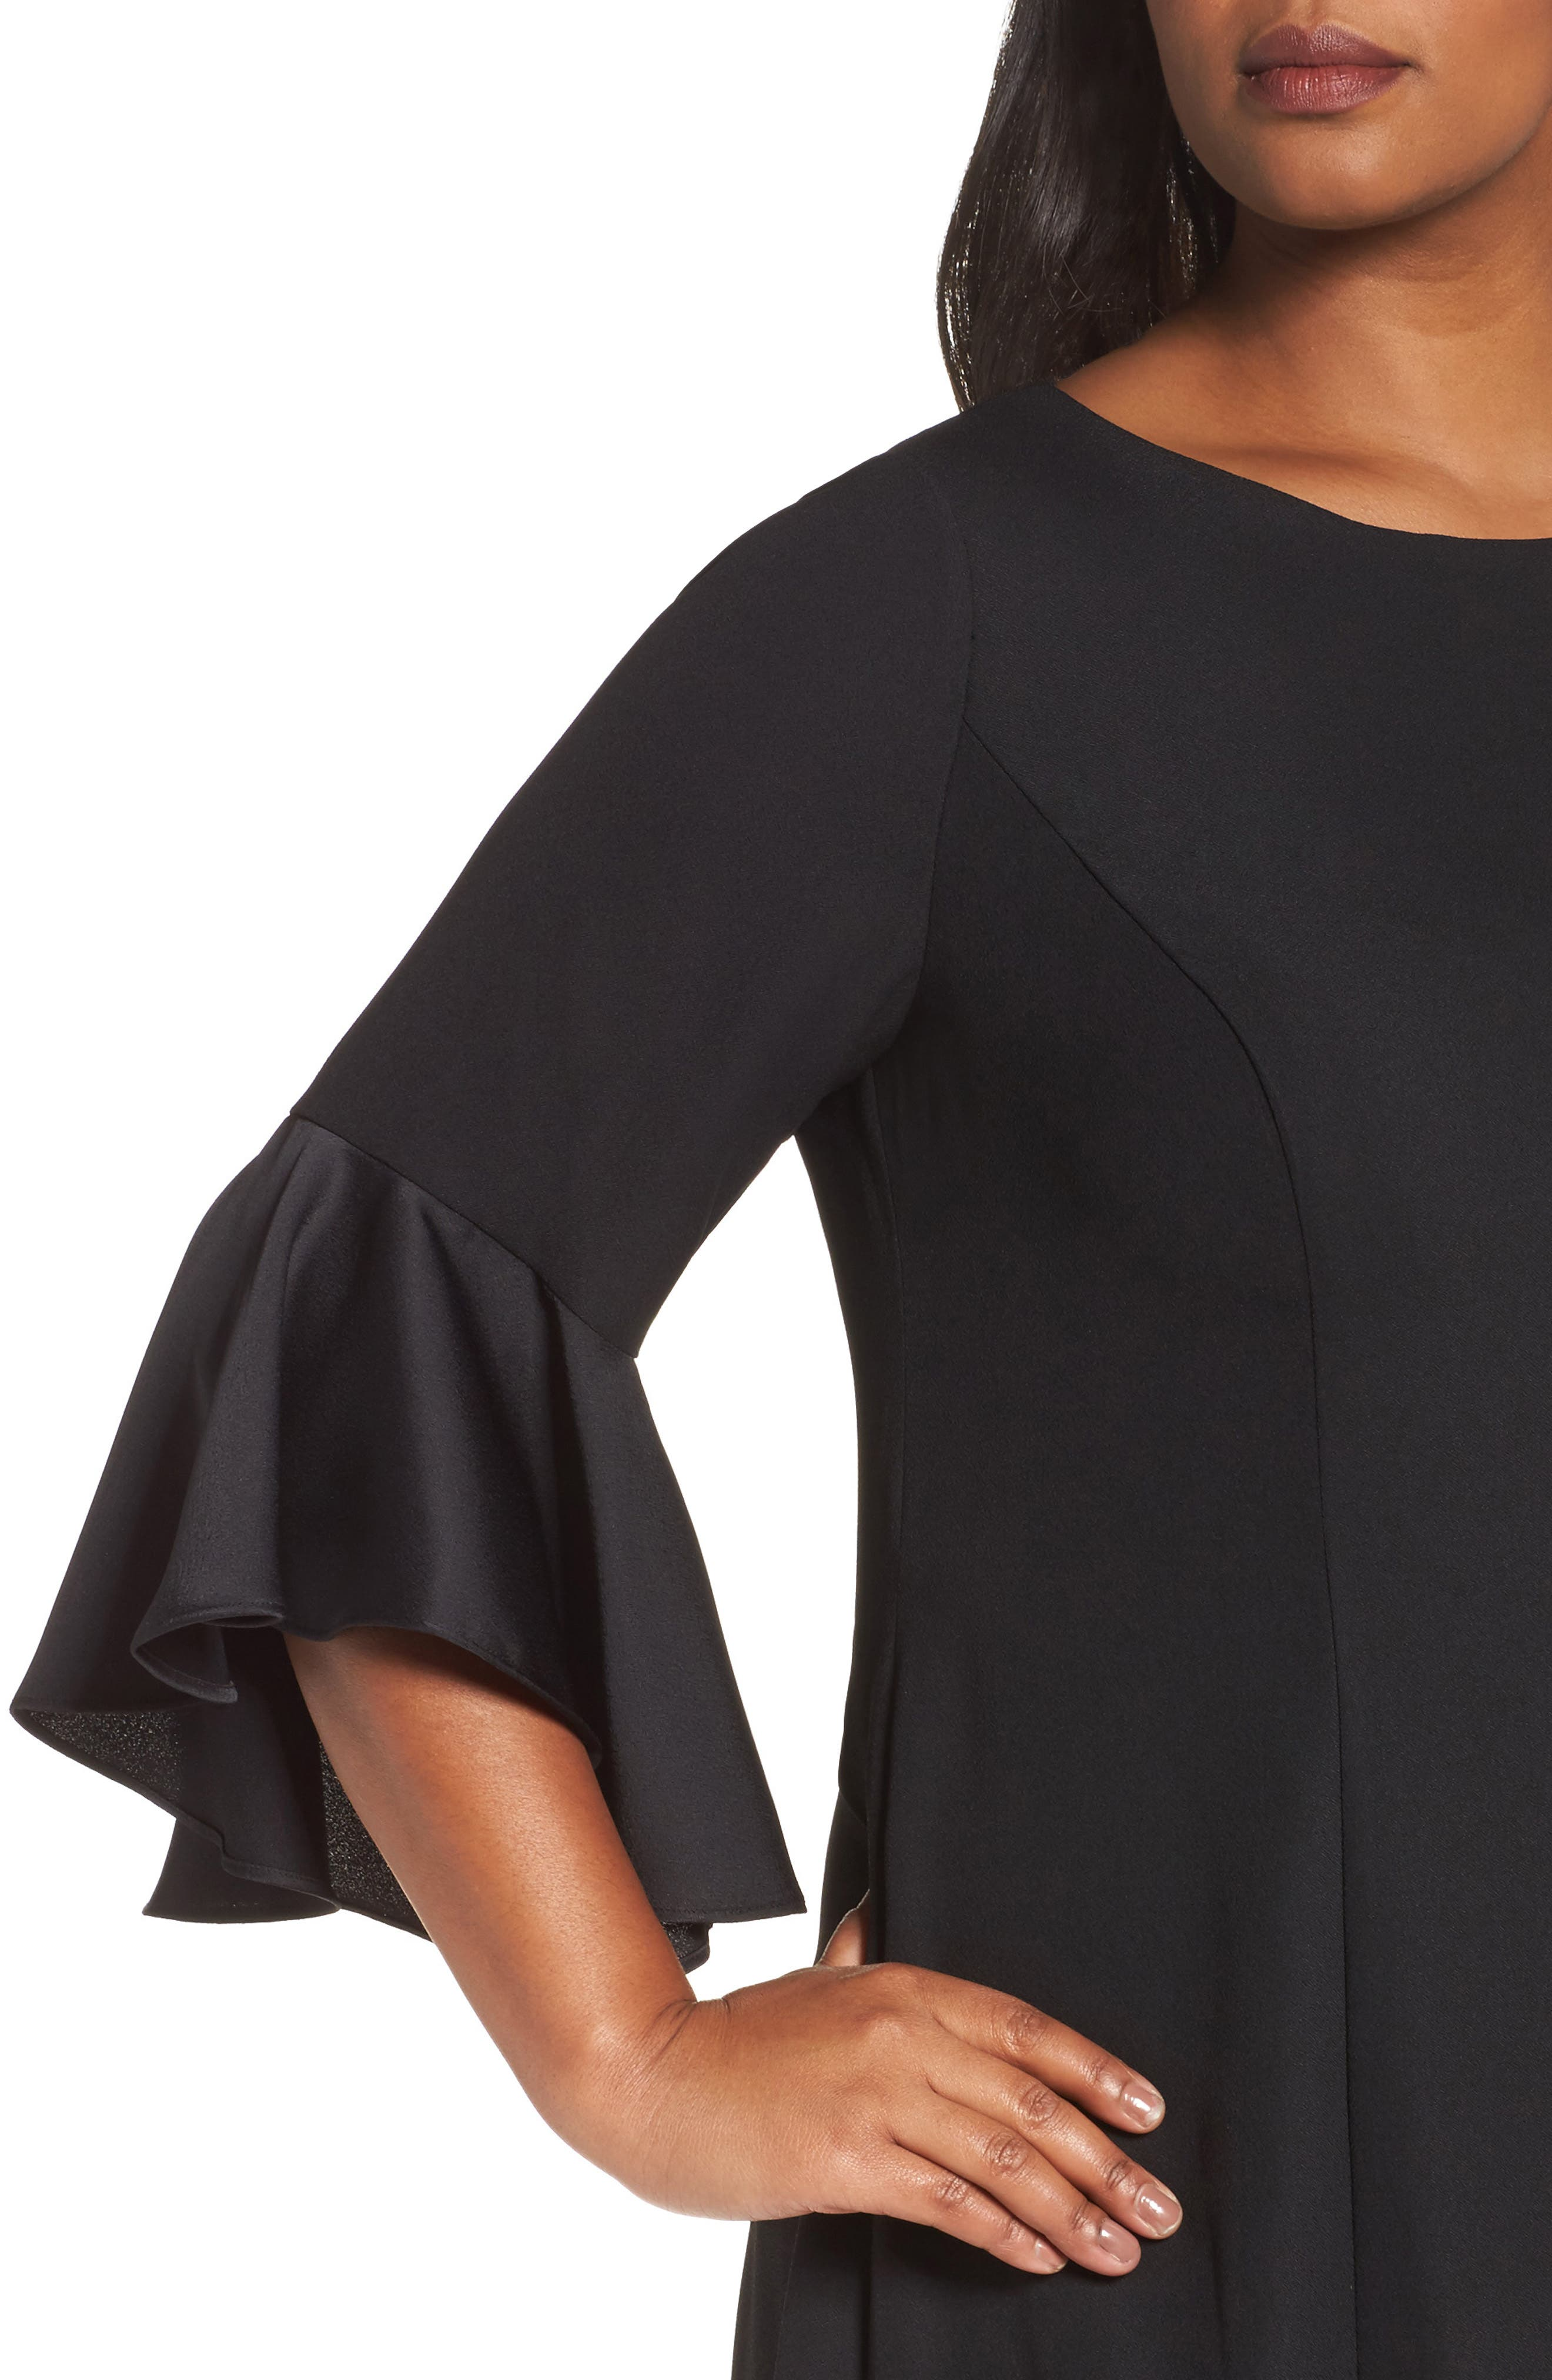 Bell Sleeve A-Line Dress,                             Alternate thumbnail 4, color,                             Black